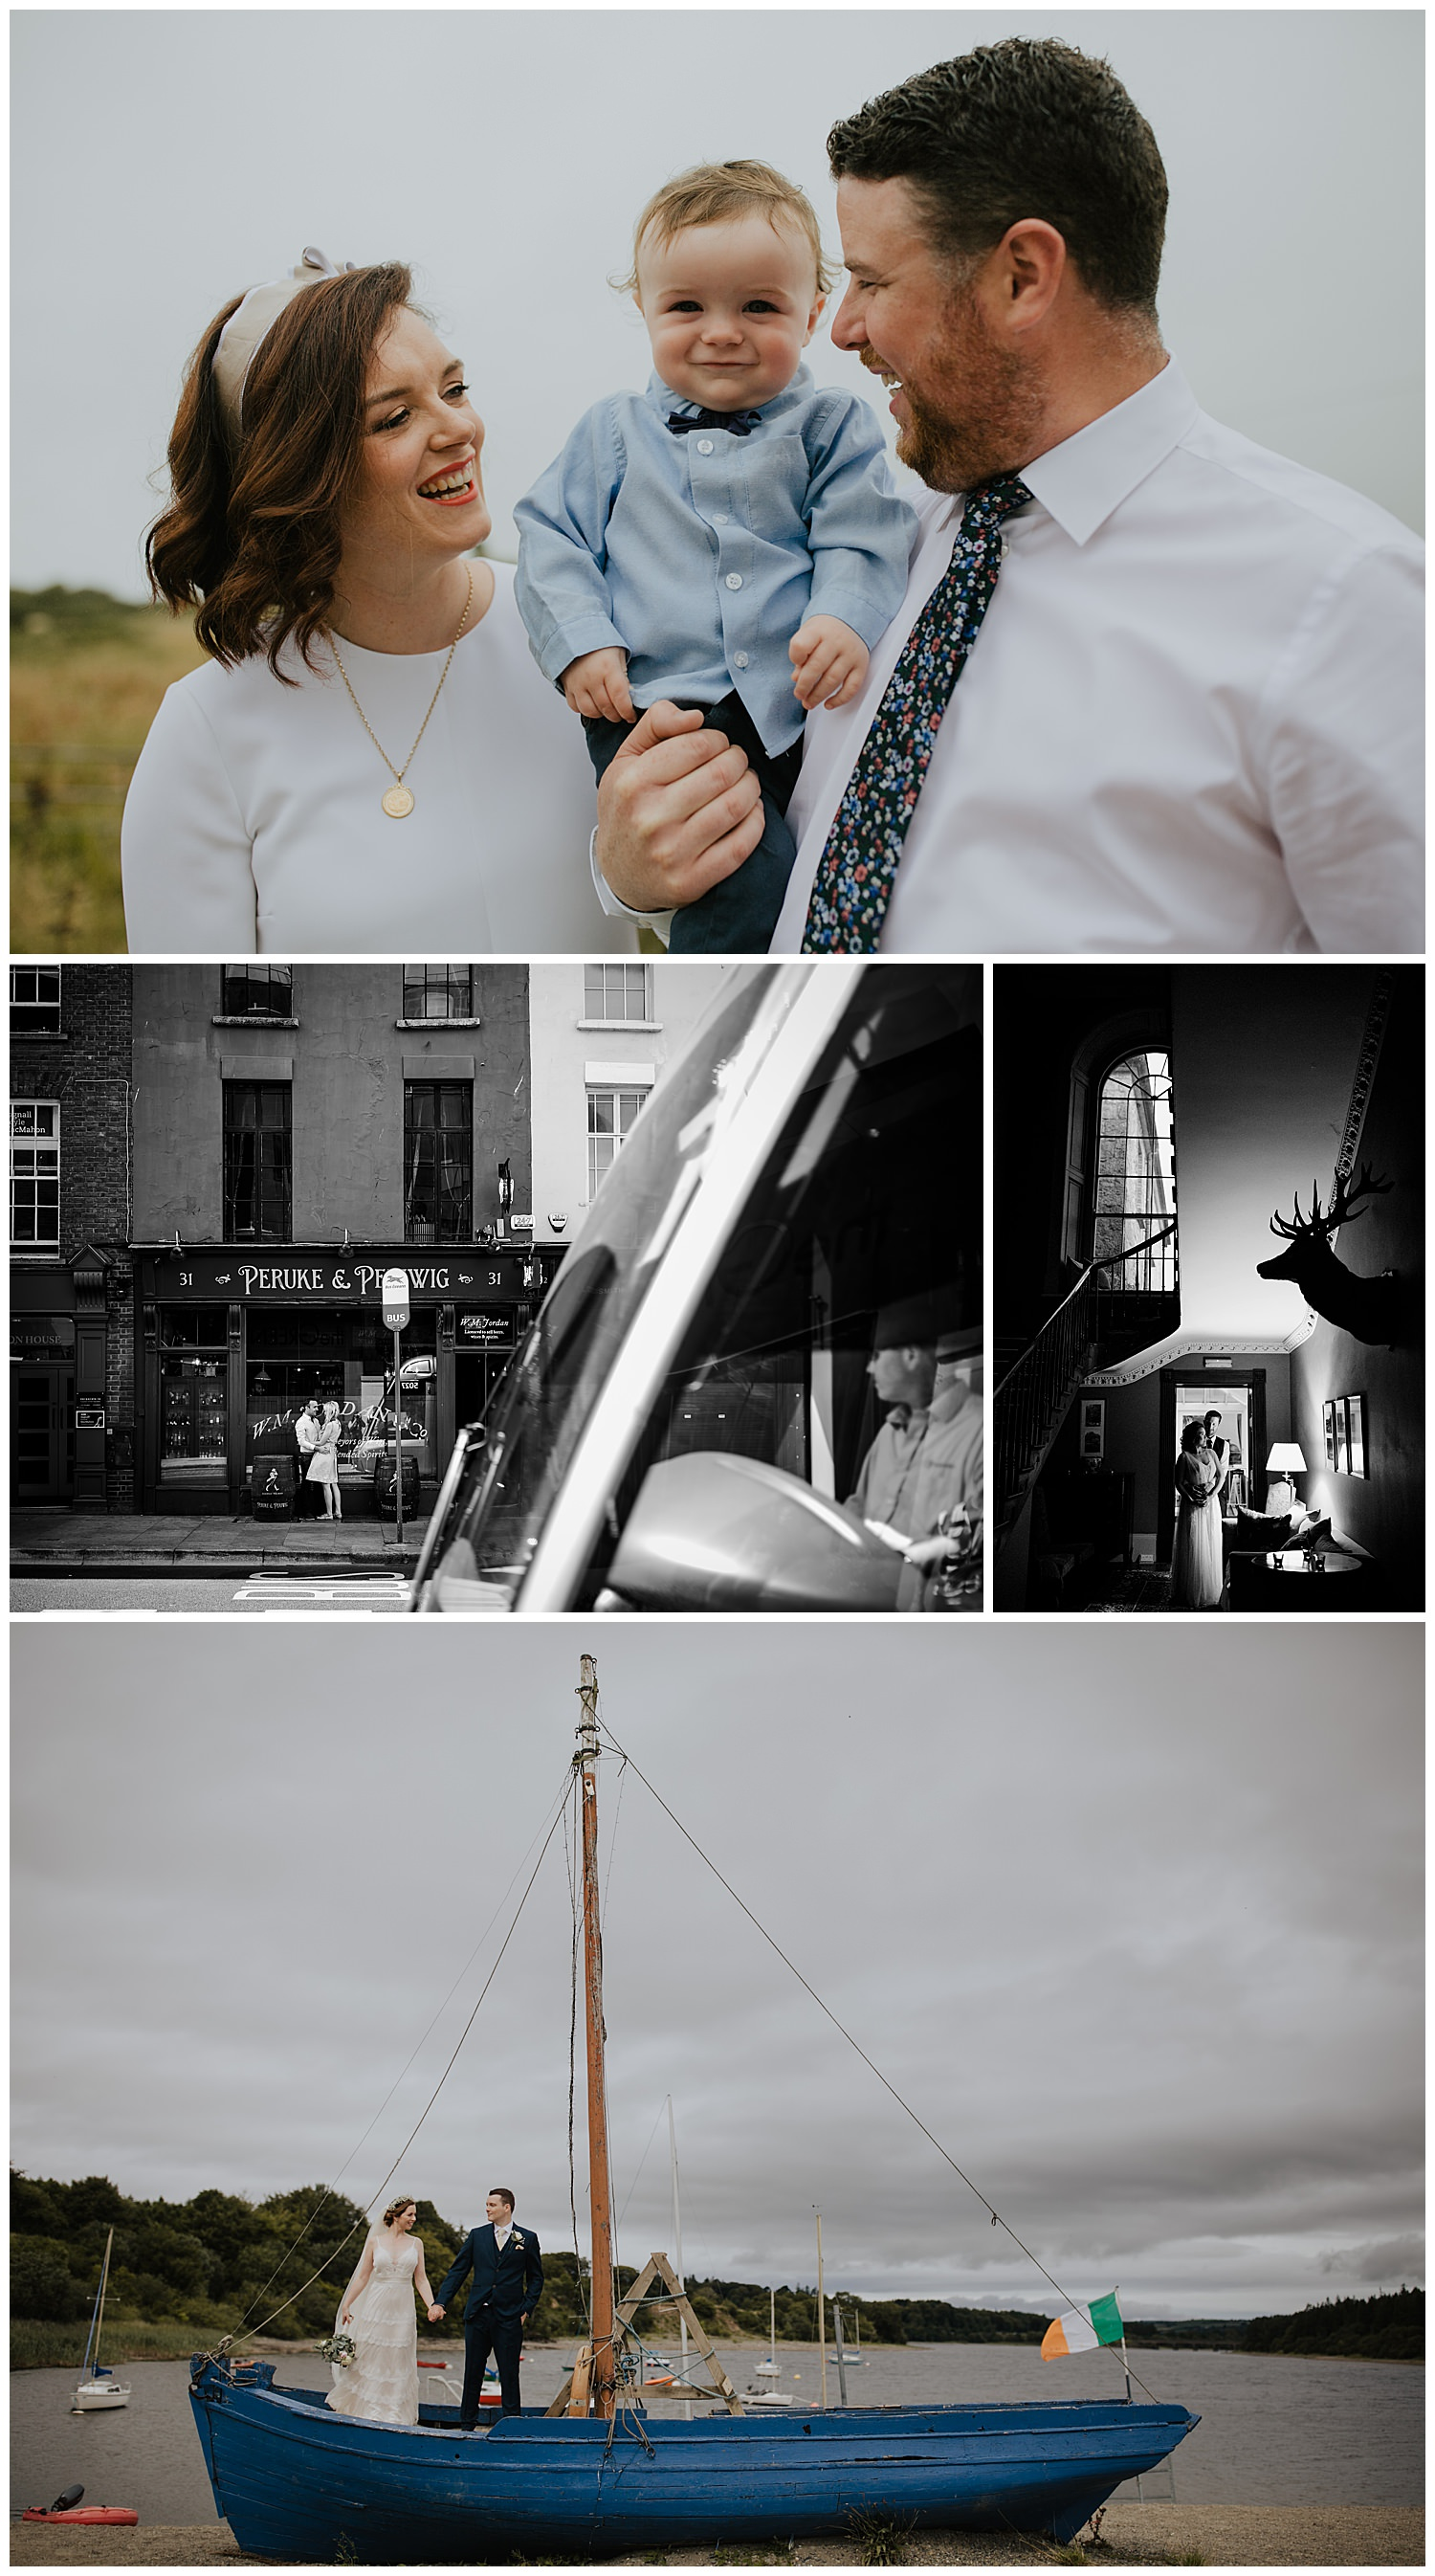 c&f_connemara_wedding_photographer_livia_figueiredo_156.jpg